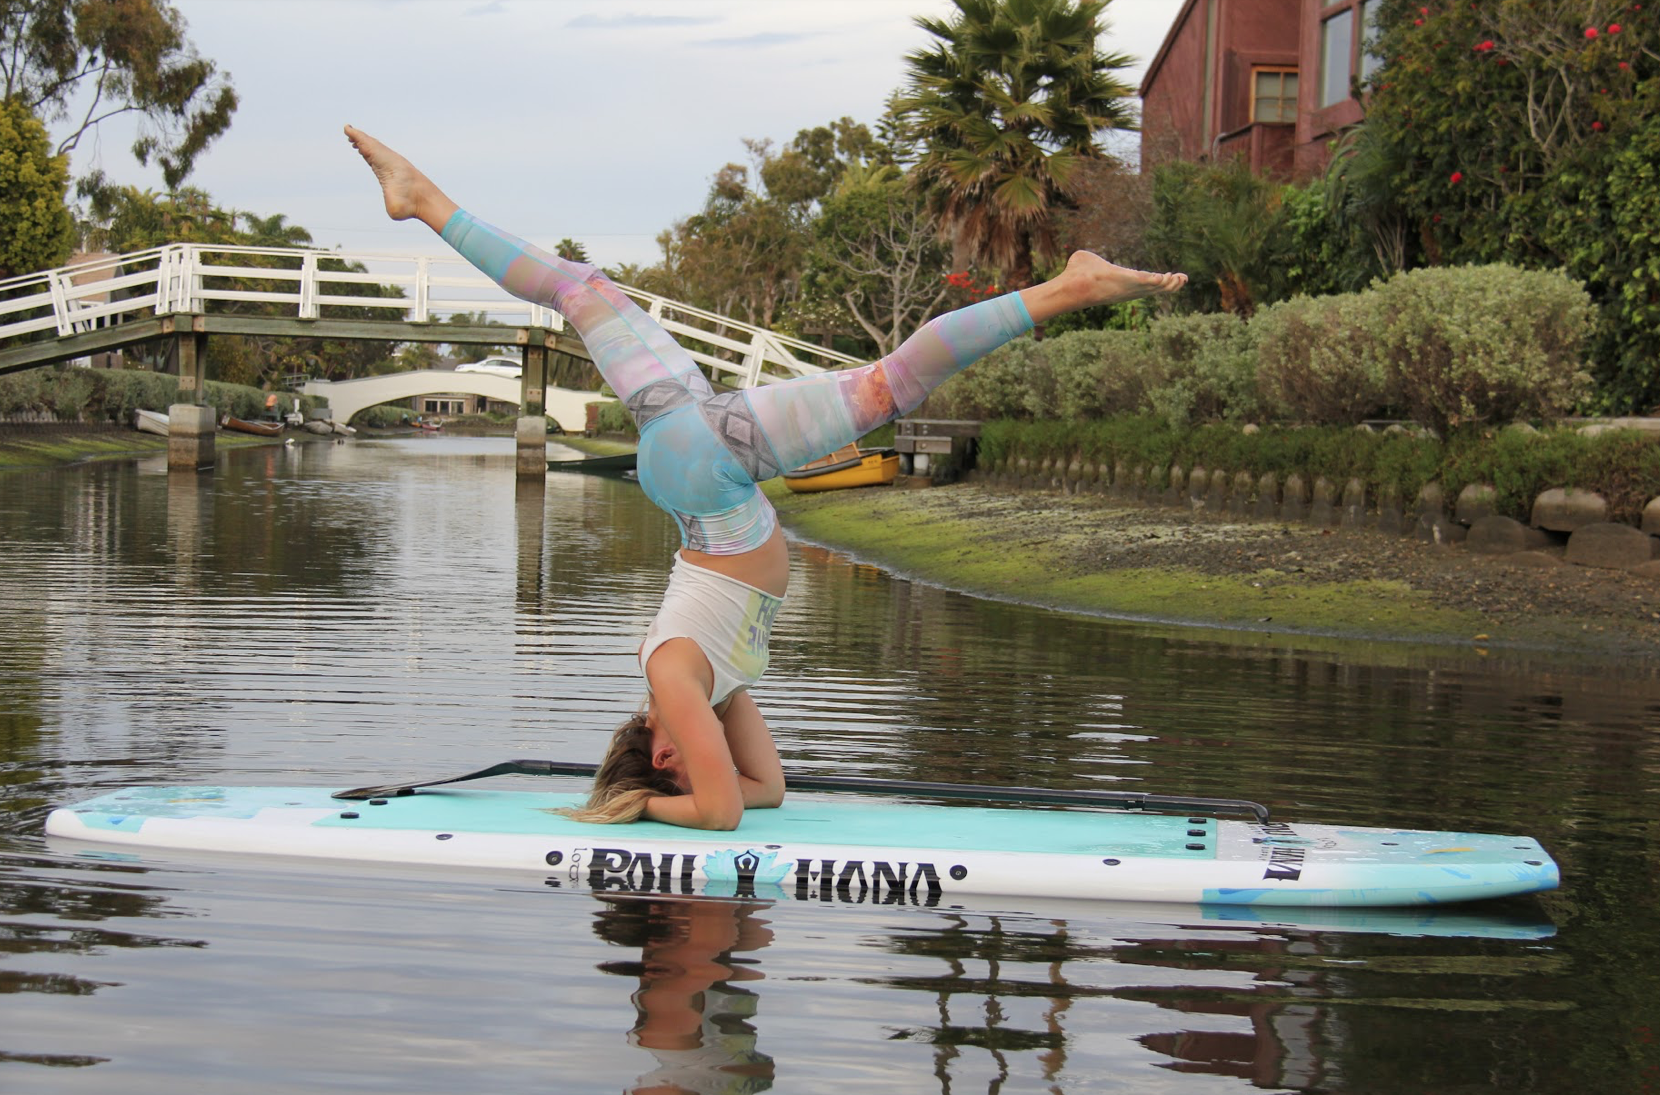 Yoga class with the Pau Hana Lotus Boards on the water doing a headstand